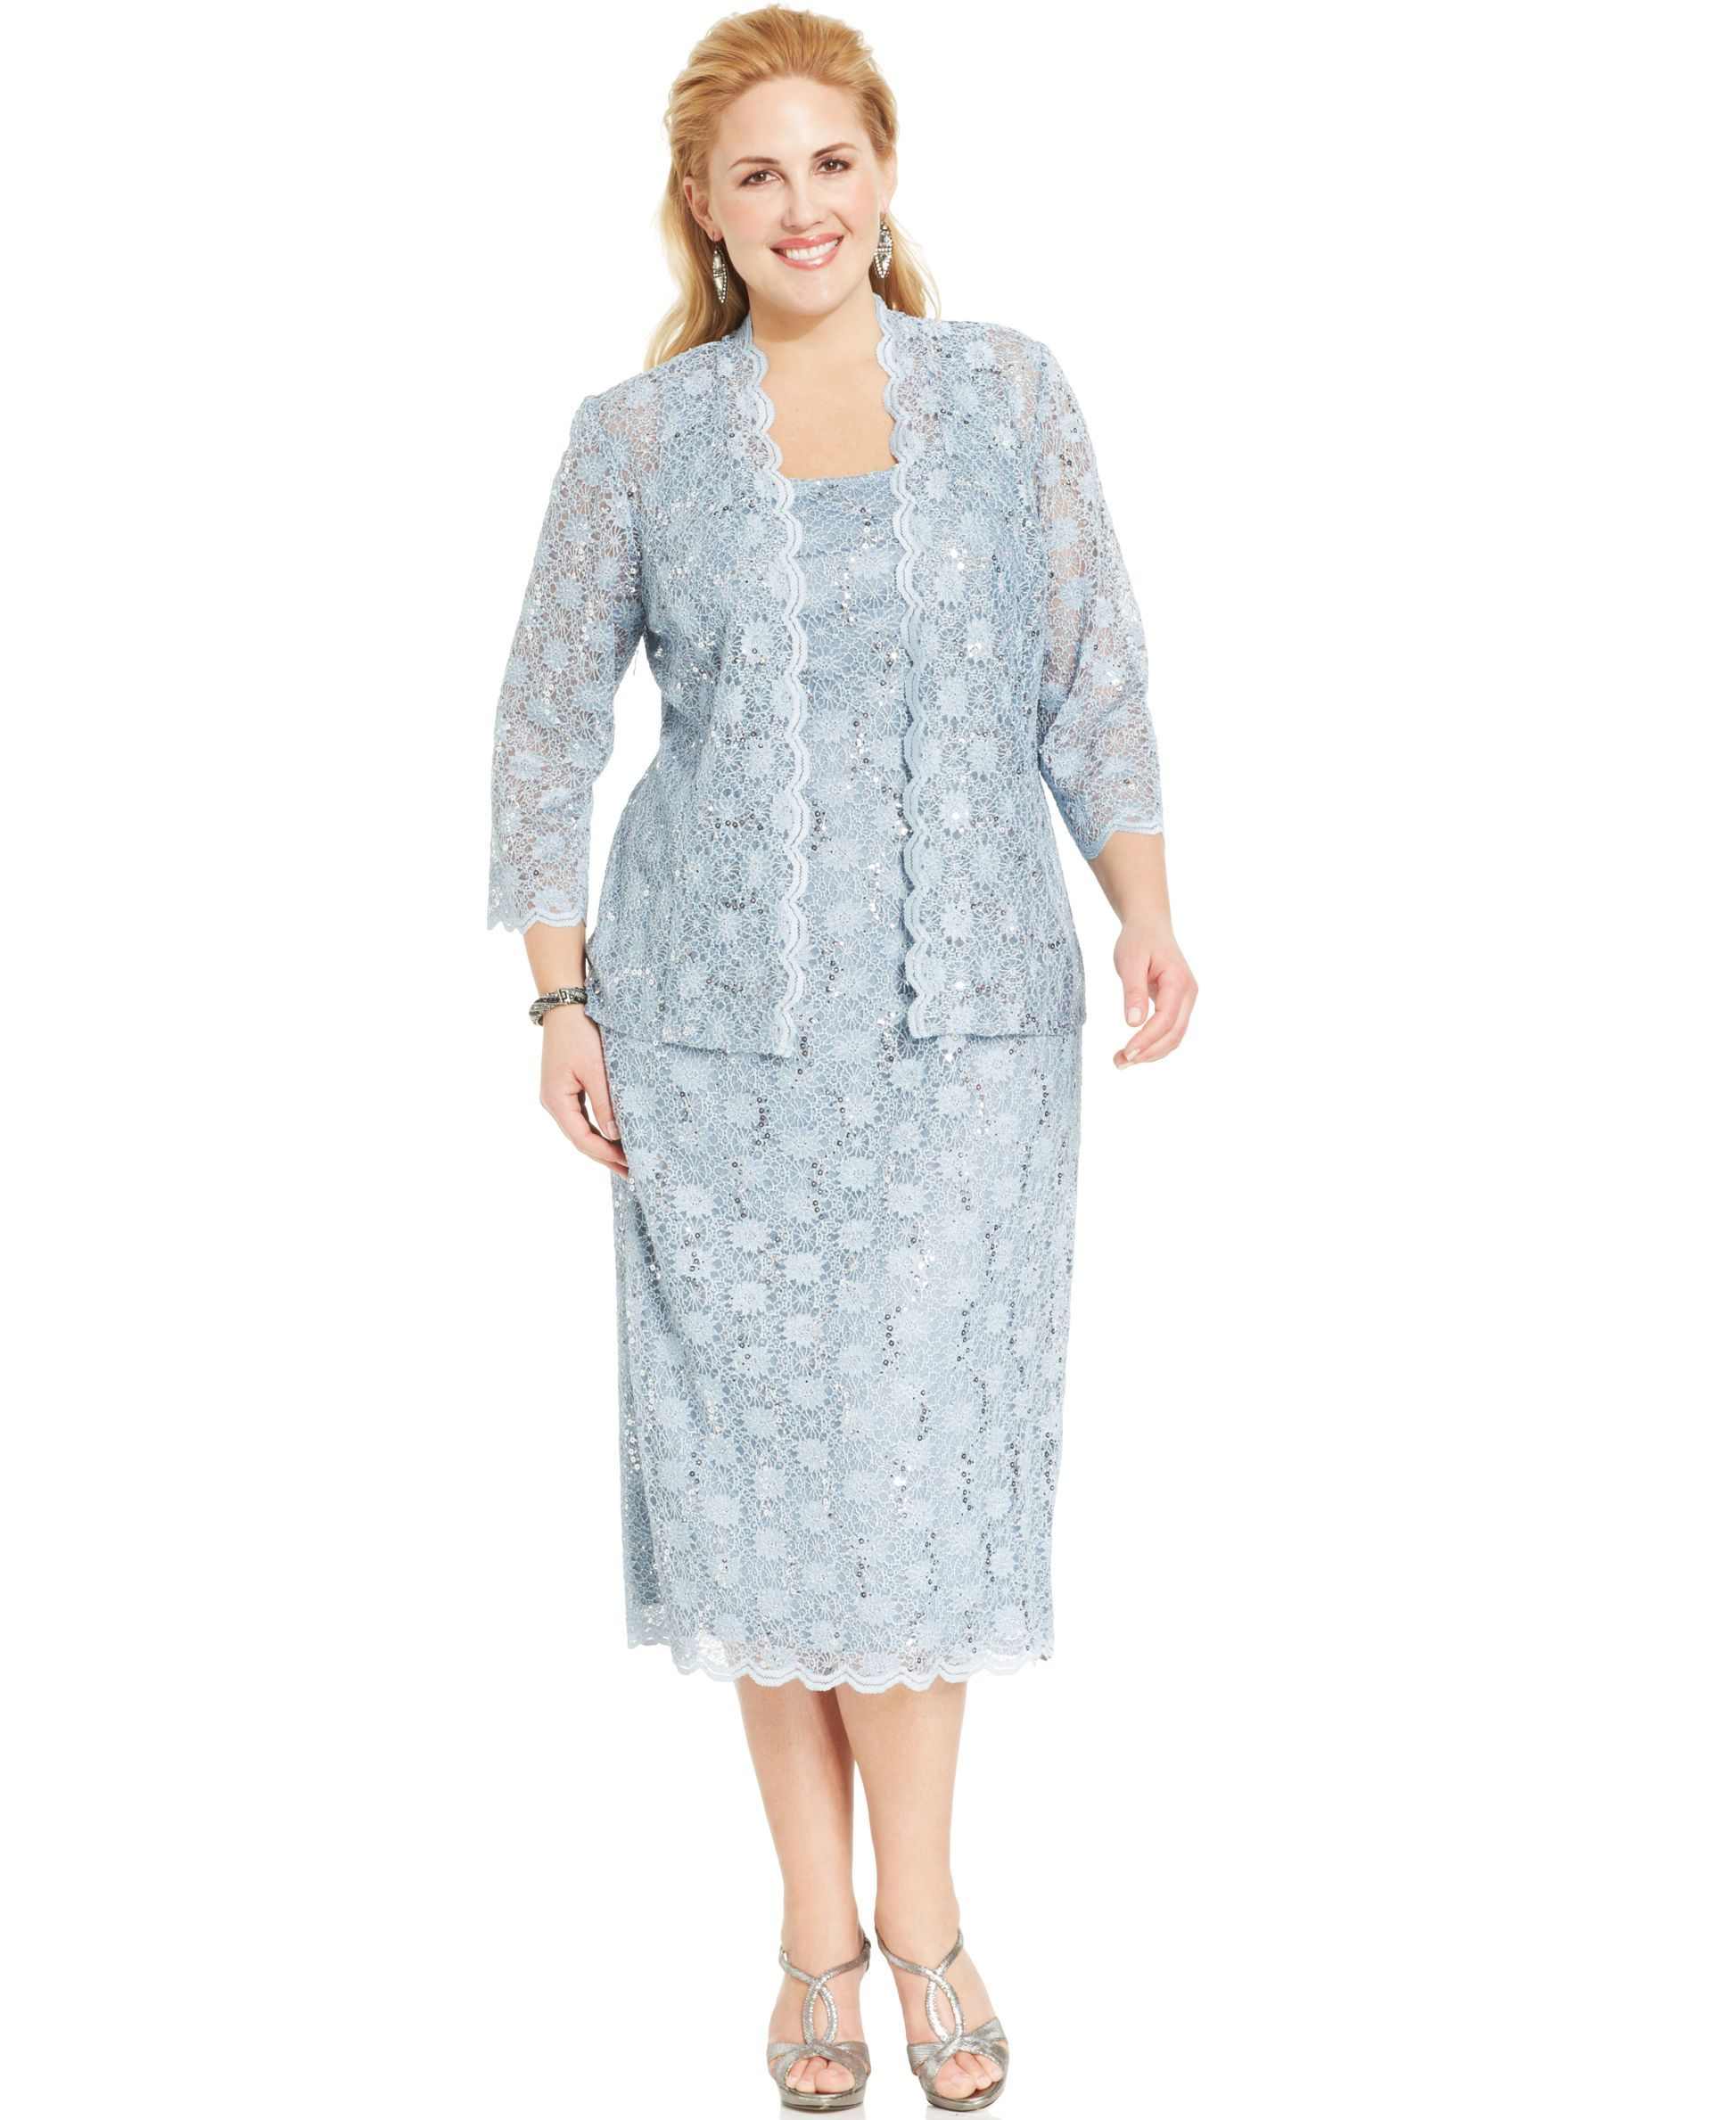 Alex Evenings Plus Size Sequin Lace Dress and Jacket | Products ...